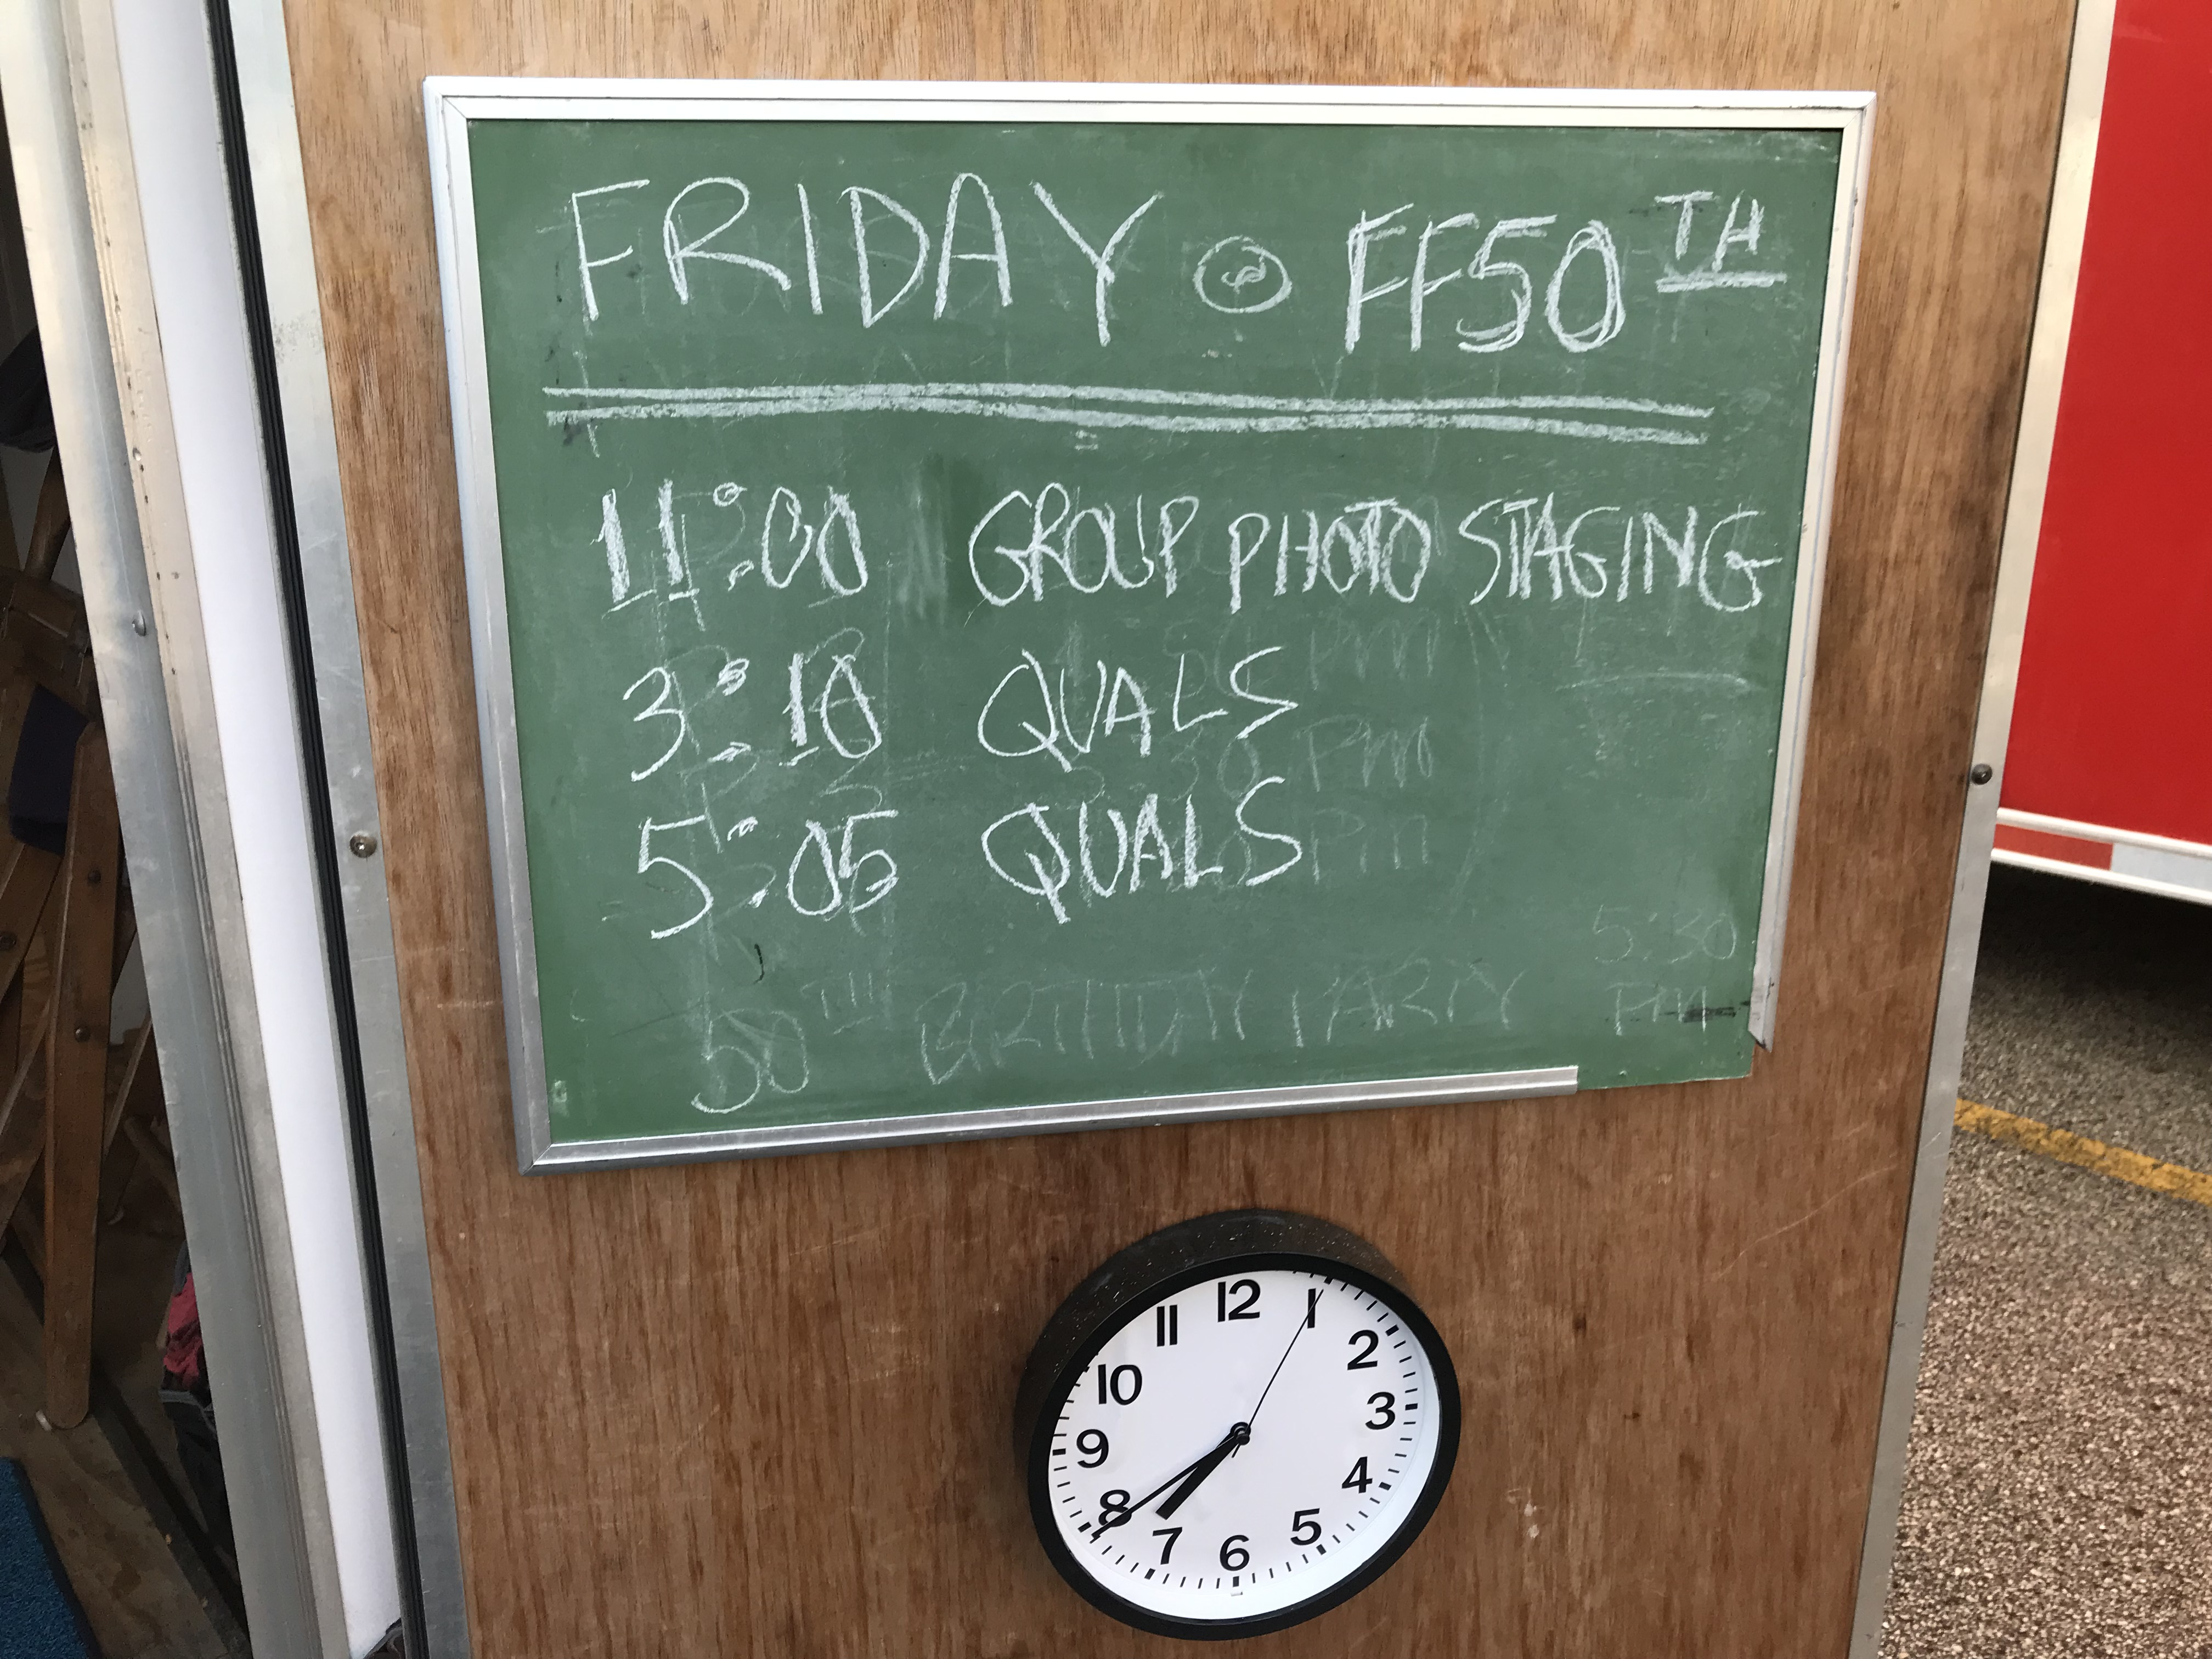 FF50th Friday Schedule